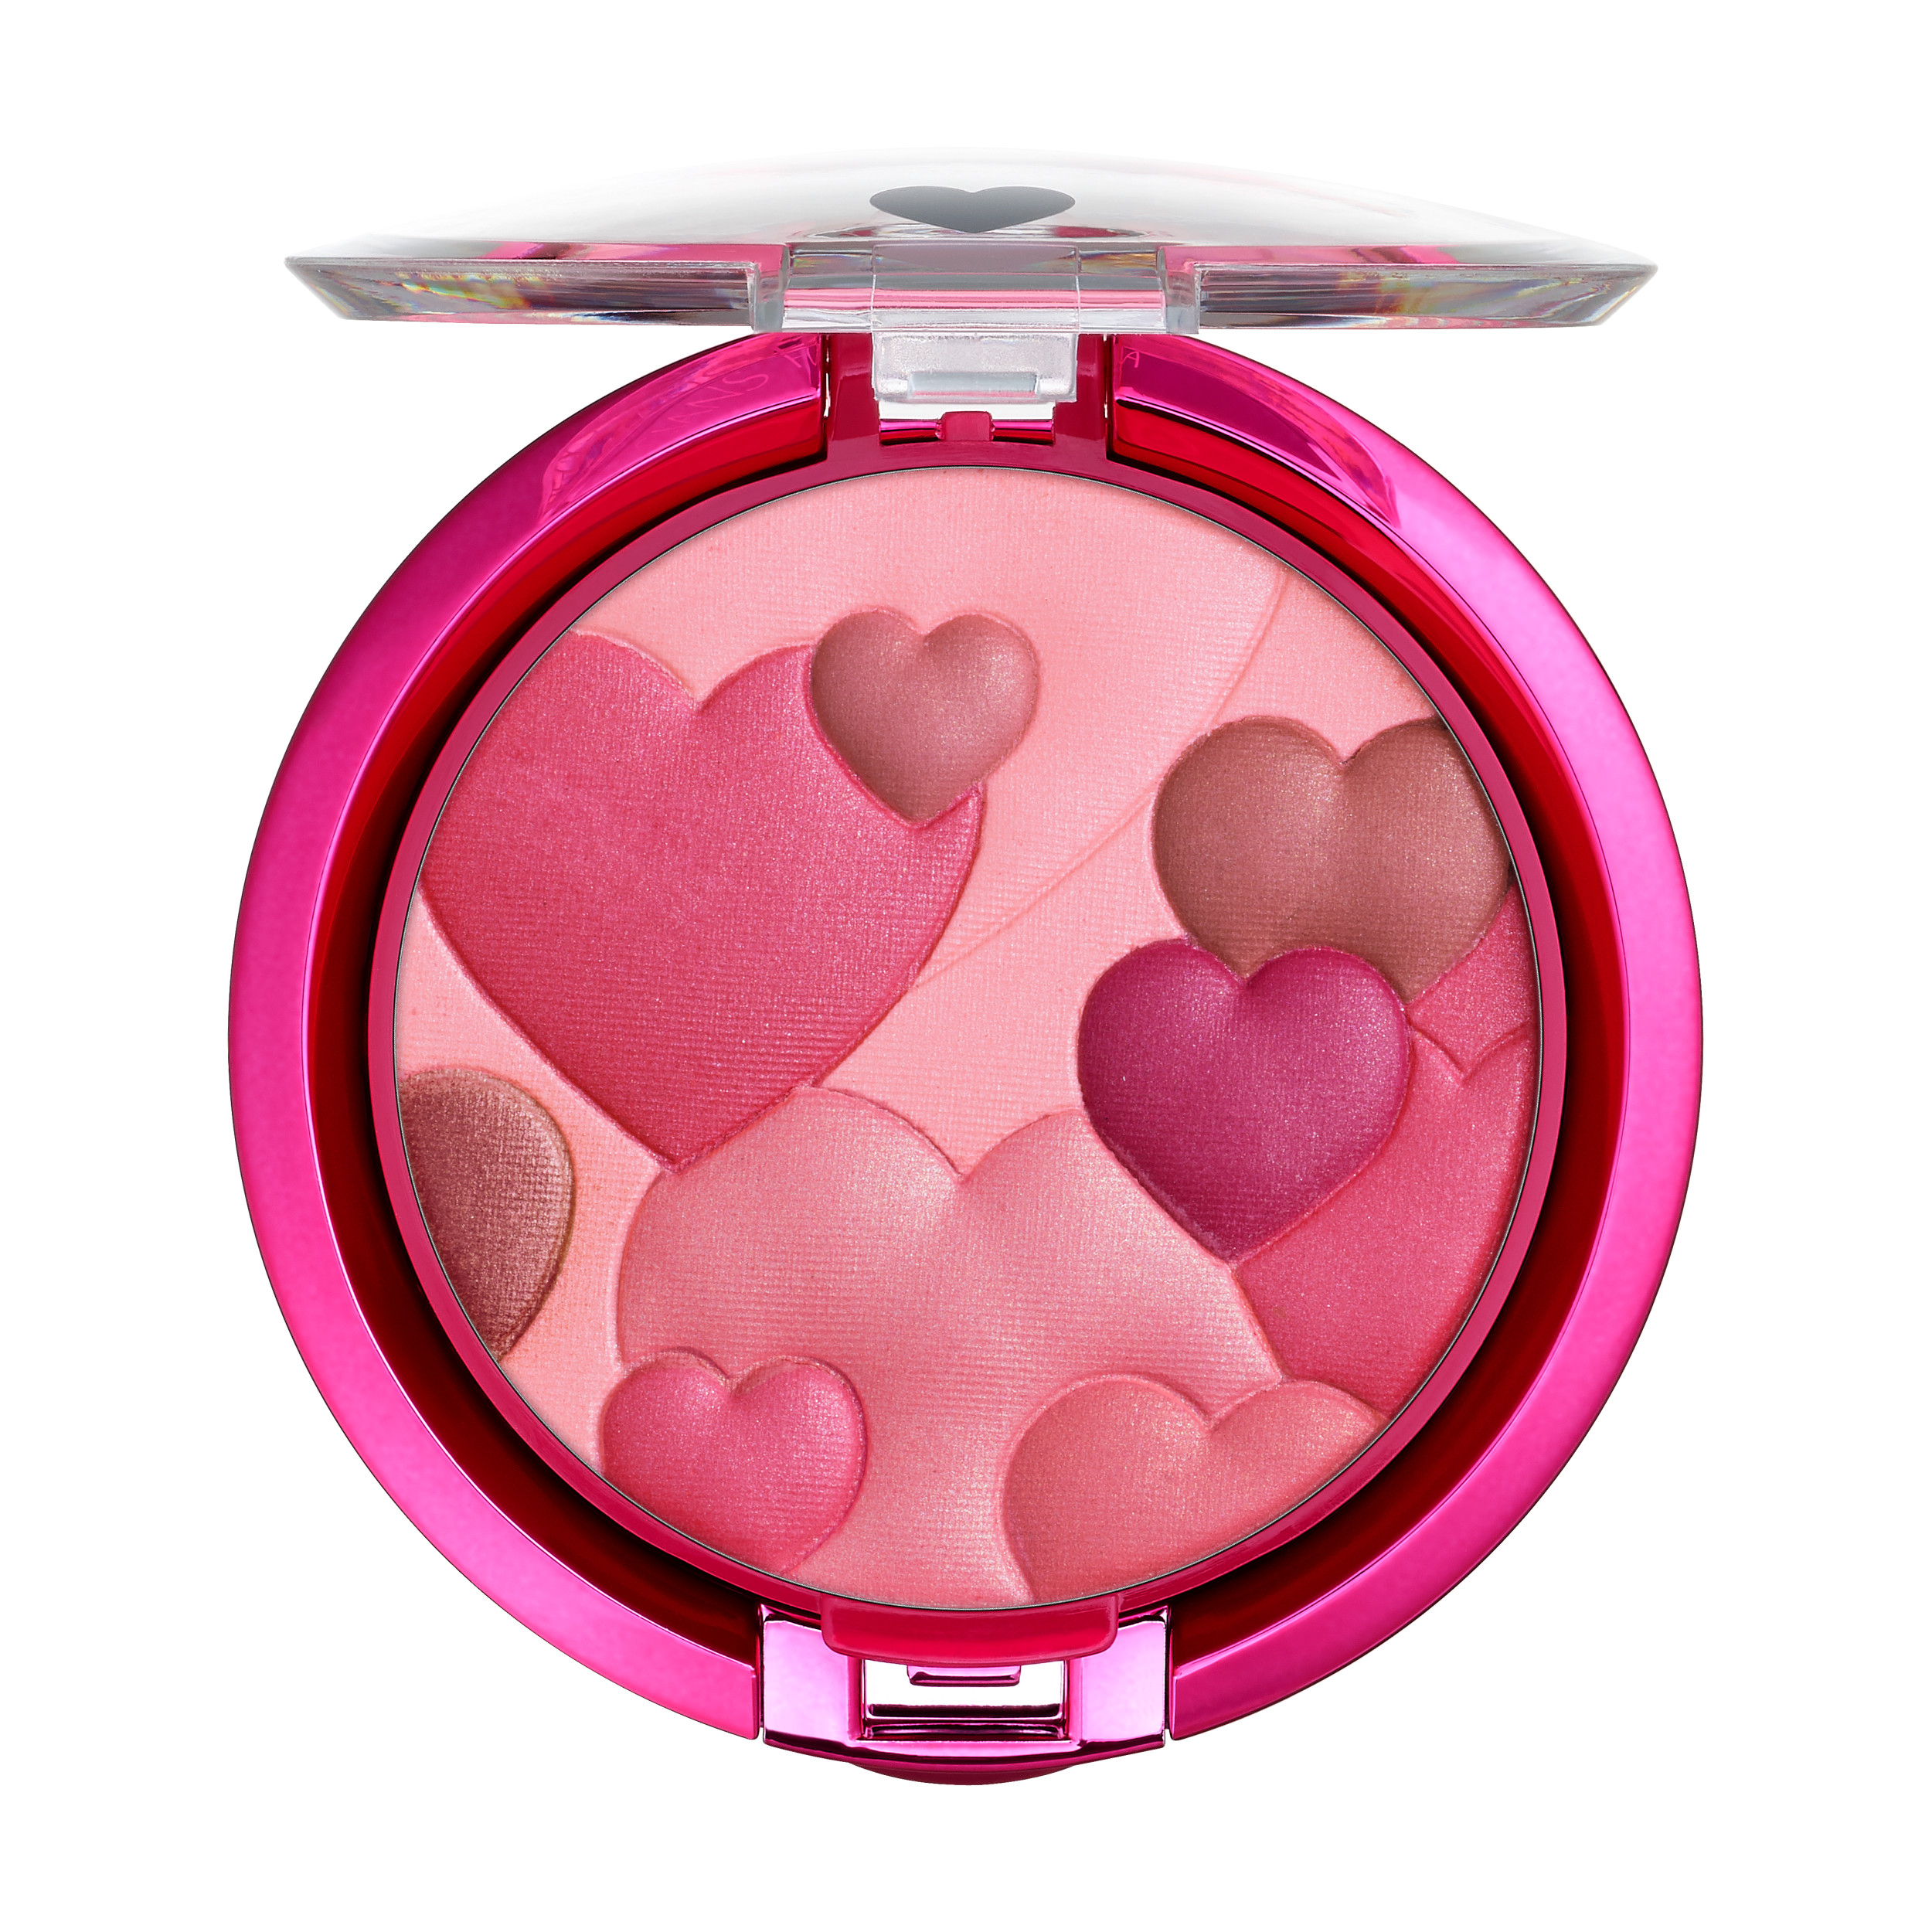 Physicians Formula Happy Booster 2 Happy Glow Multi-Colored Blush - Rose